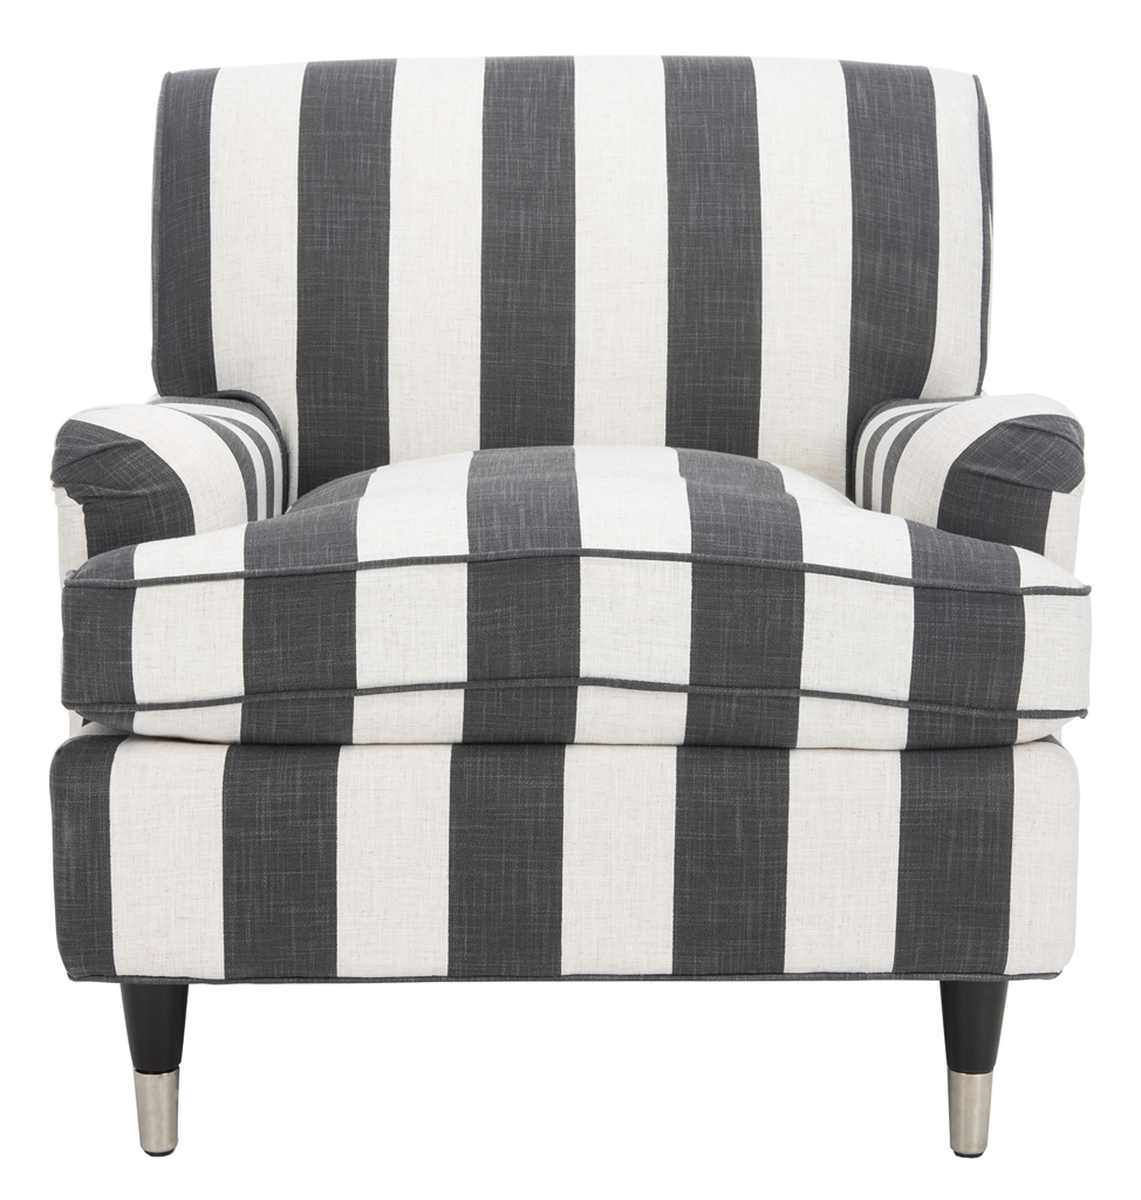 ACCENT CHAIRS. Color: Black & White. Save. MCR4571H - Striped Armchair Accent Chairs - Safavieh.com